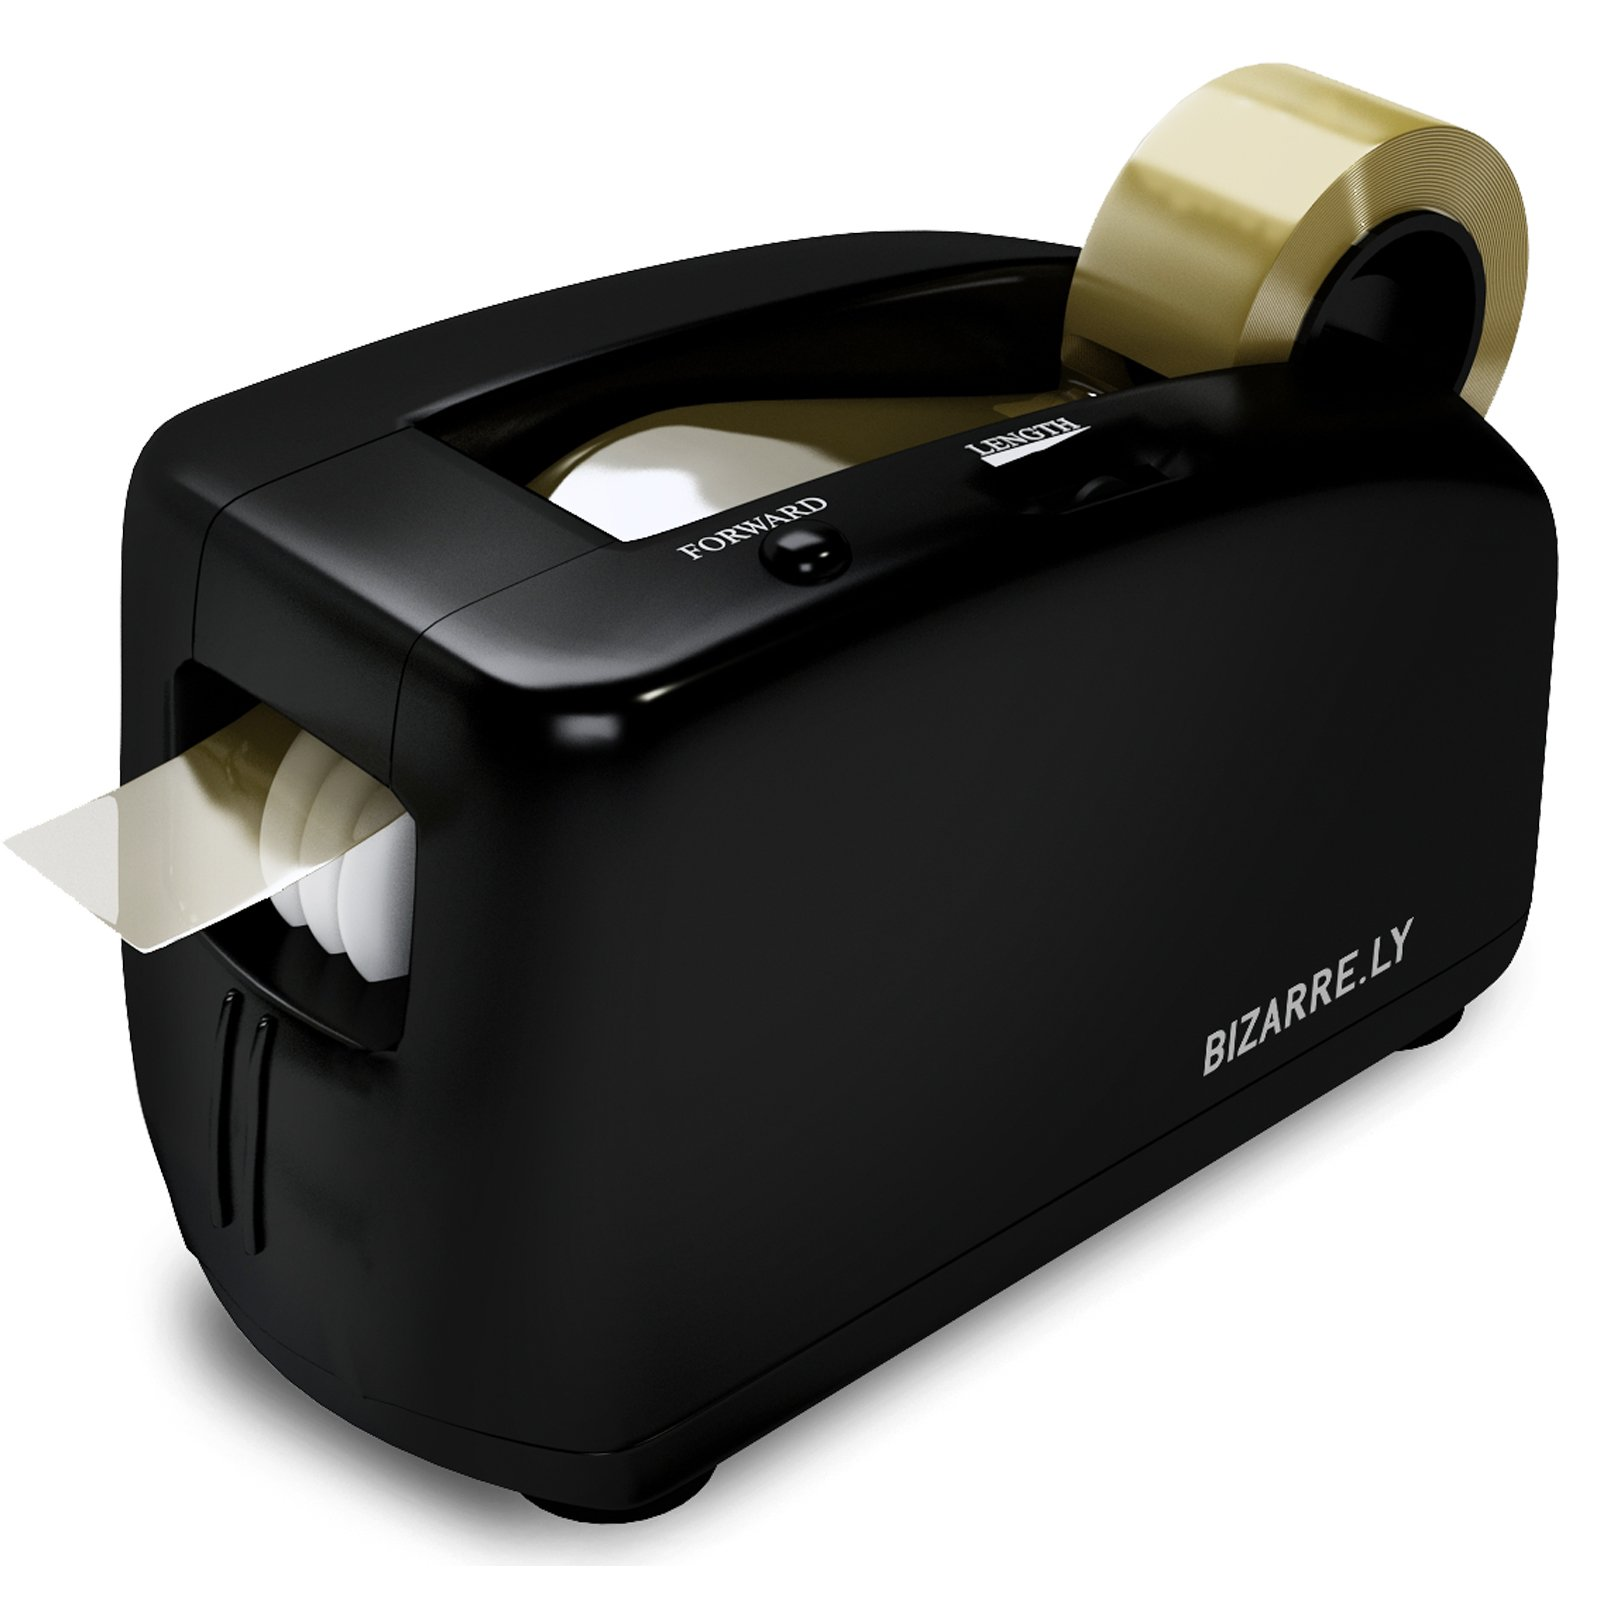 Automatic Electric Tape Dispenser by Bizarre.ly - Professional Heavy Duty Office Tape Dispenser with 1 Inch Core - Quiet, Compact and Portable - Includes Free Tape Roll and Warranty